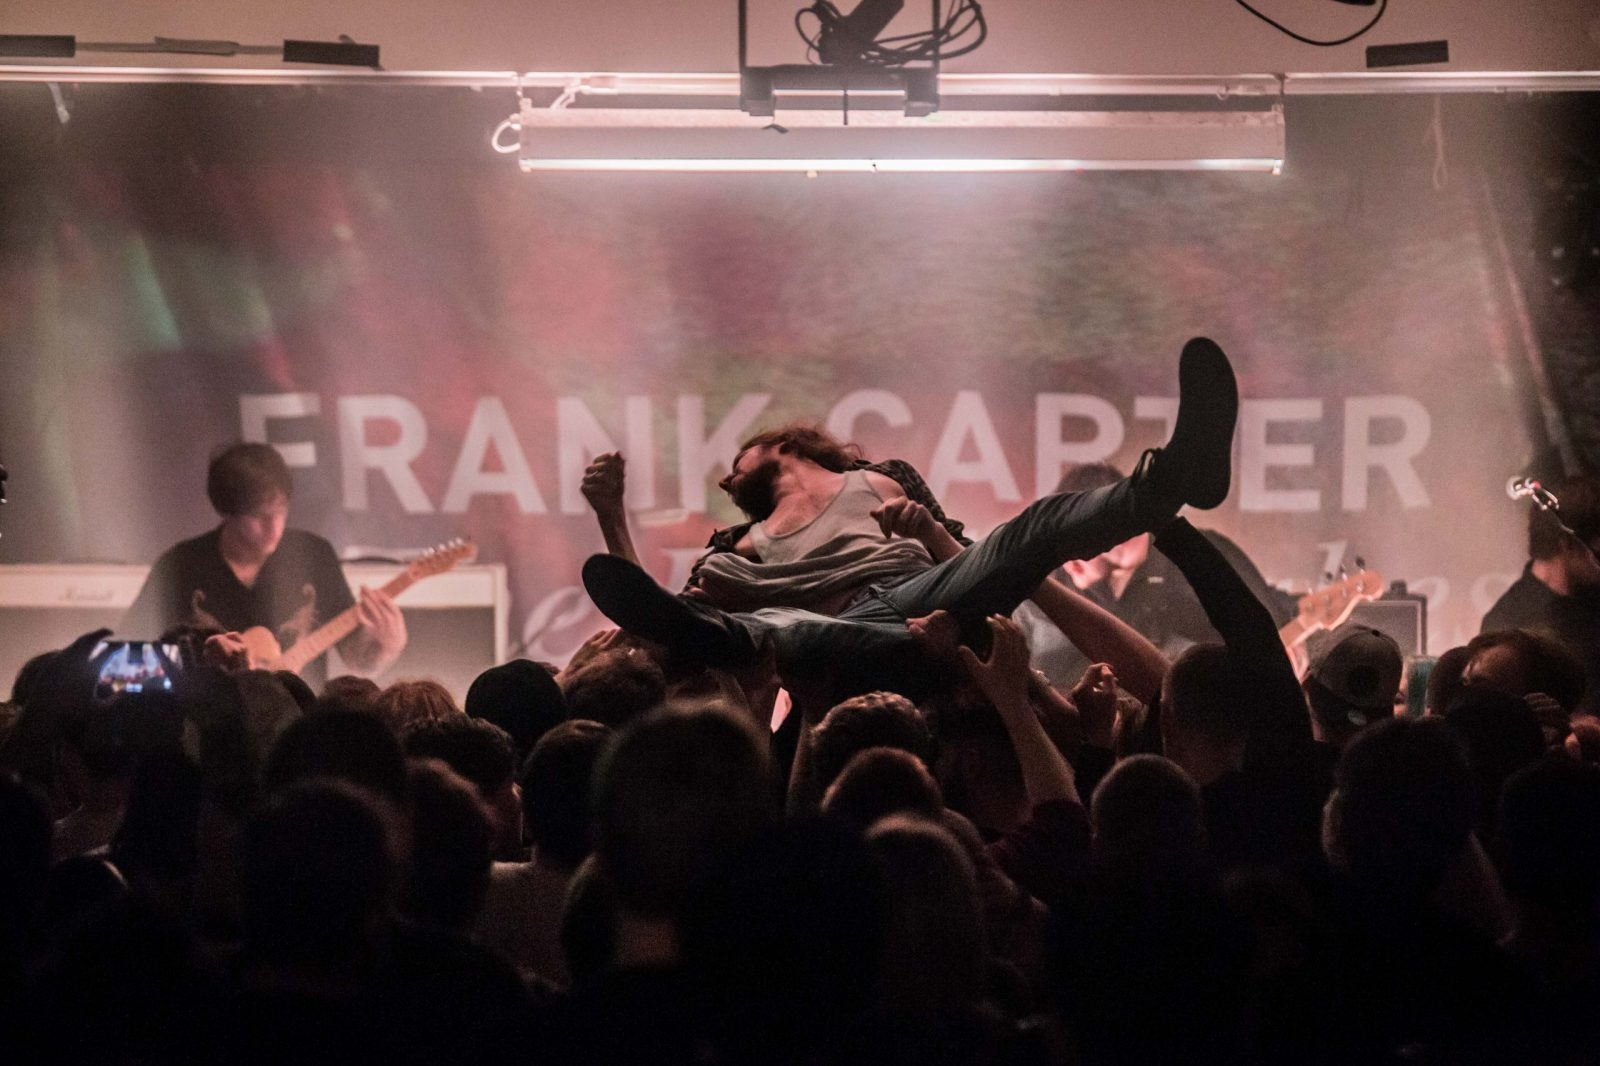 Frank Carter & The Rattlesnakes @ Oh Yeah Music Centre 13